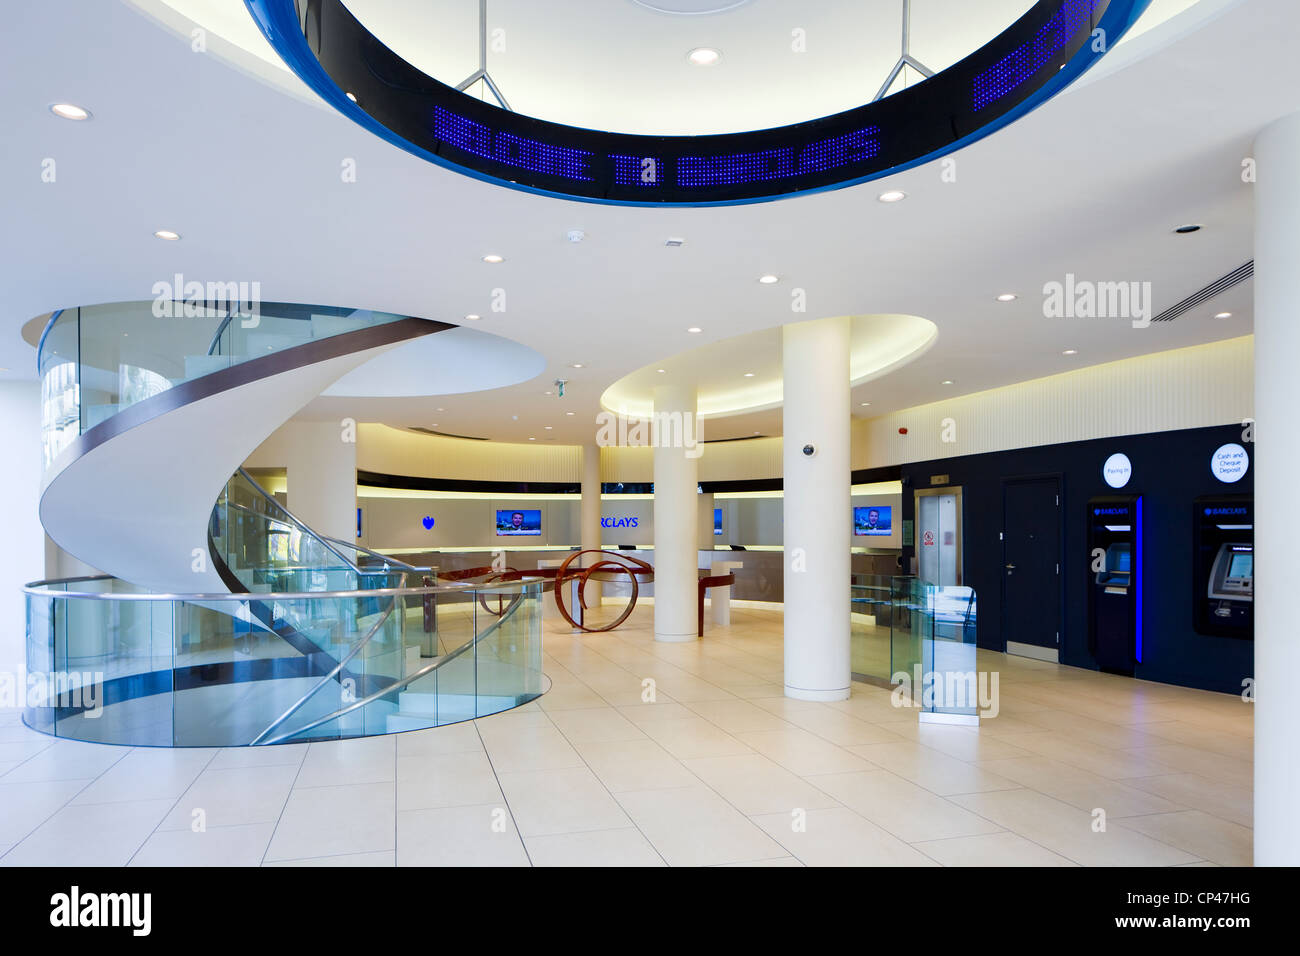 Barclays Bank-Interieur Stockfoto, Bild: 48036956 - Alamy